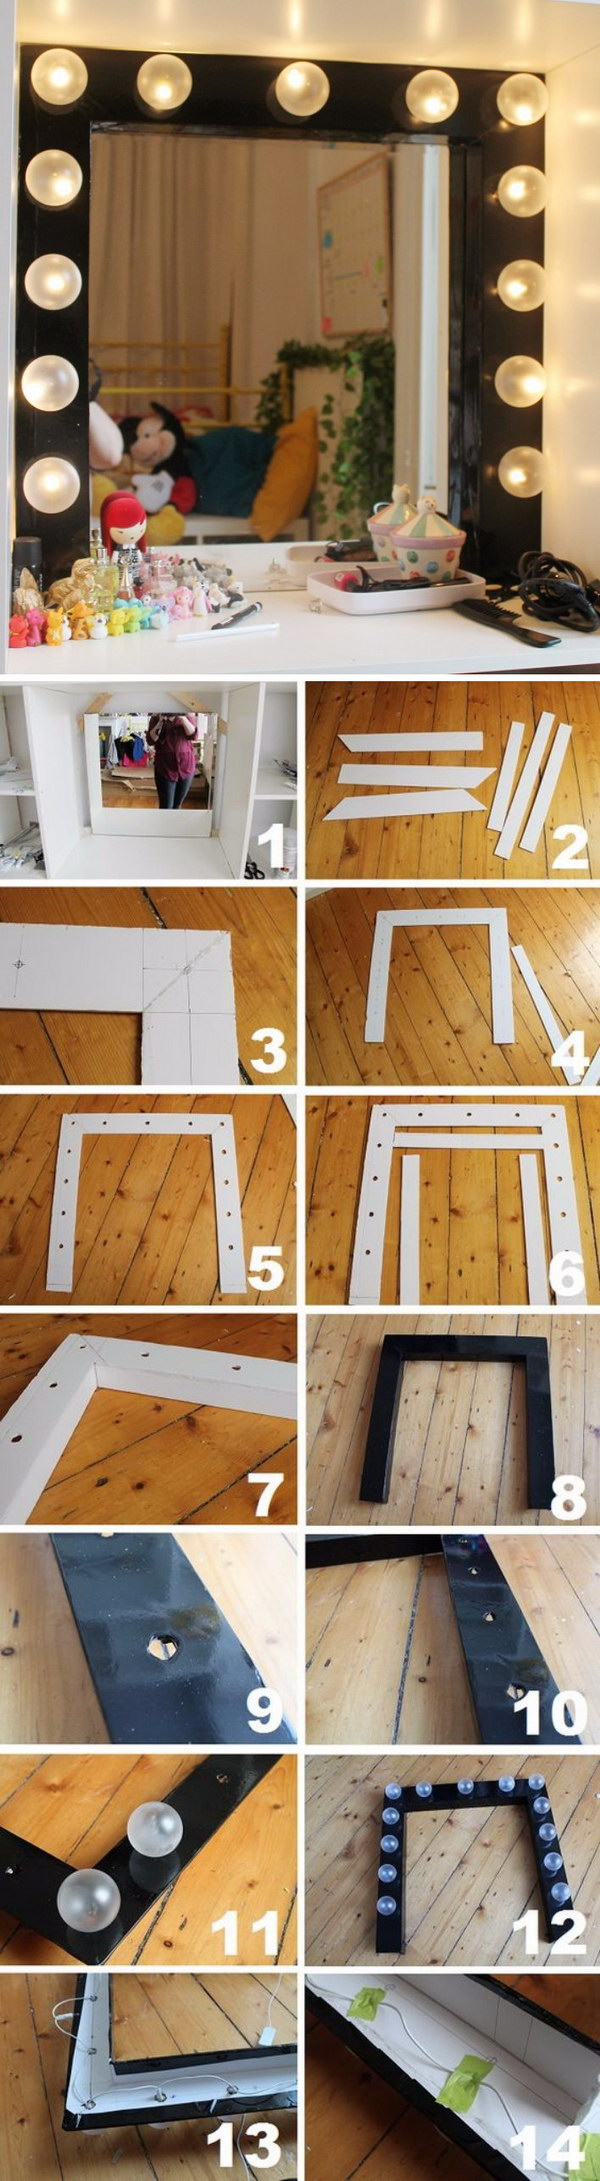 DIY Dressing Room Mirror